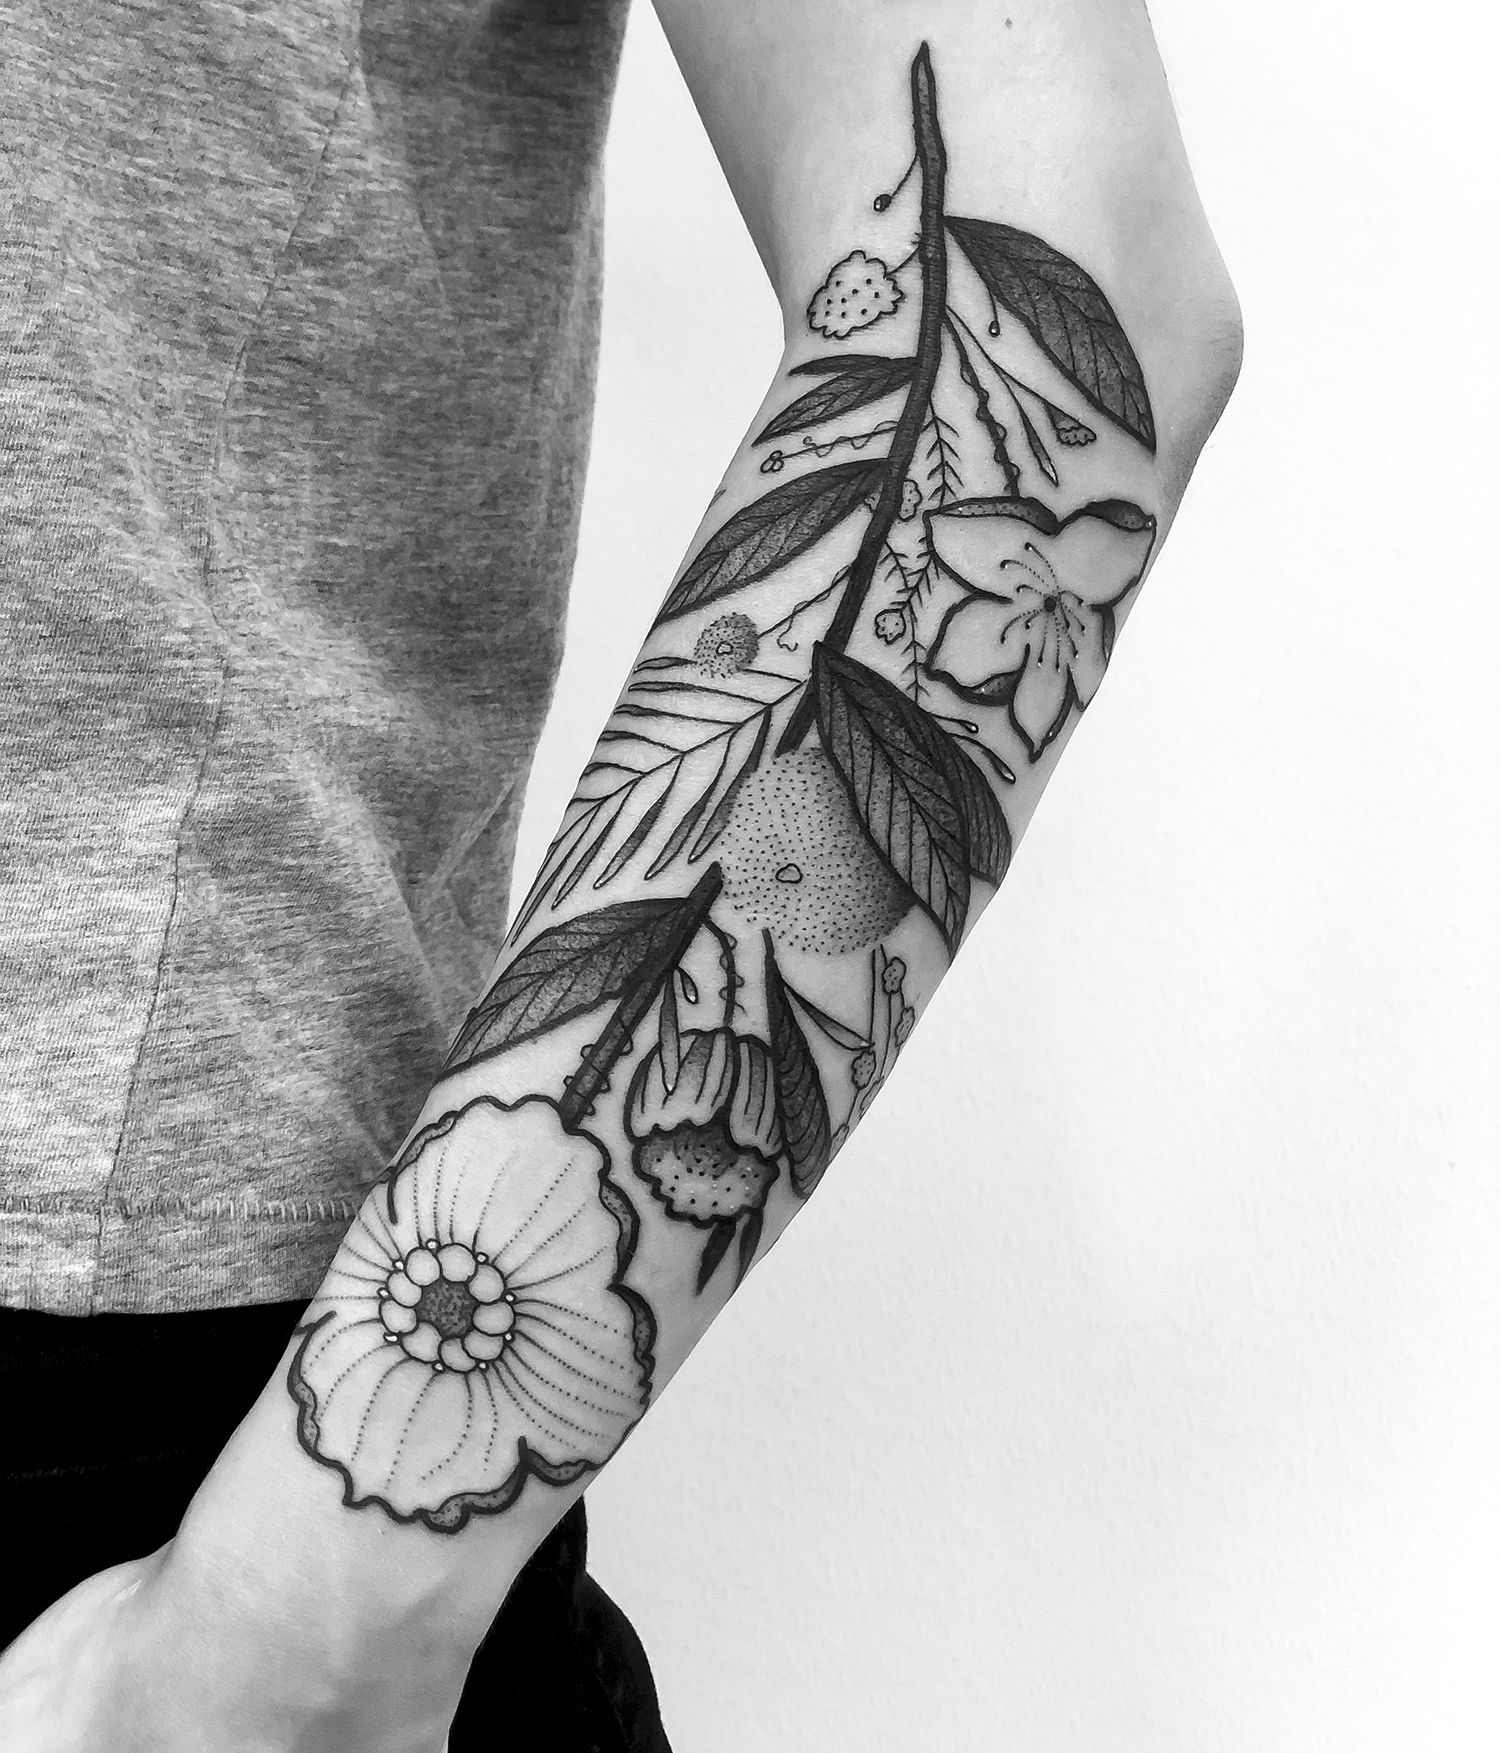 hybrid design, various plants / flowers in one tattoo